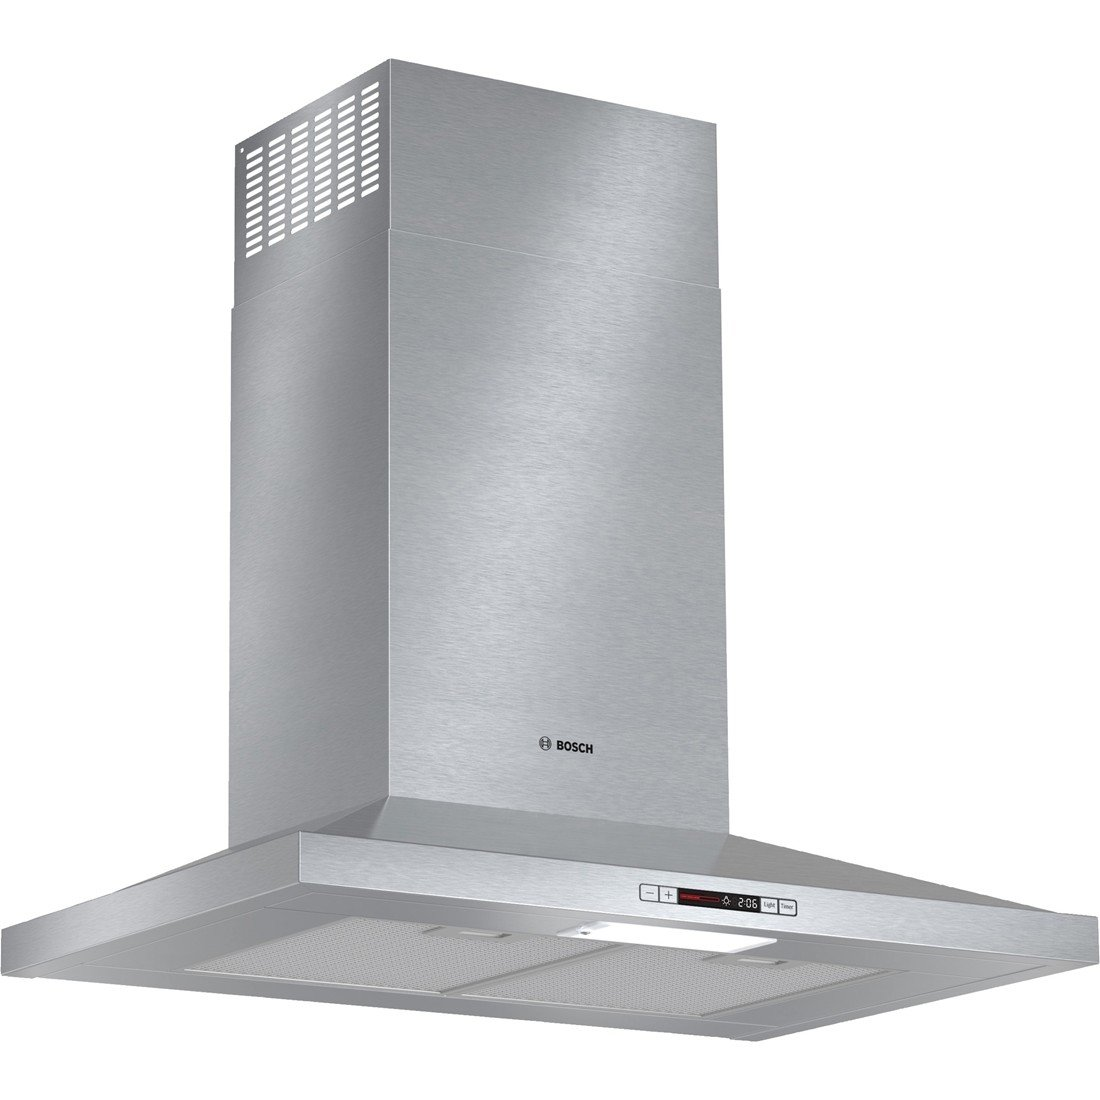 HCP30E51UC 30'''' Wide Energy Star Series Pyramid Canopy Chimney Hood 300 CFM Centrifugal Integrated Blower Three Speed Touch Controls with LCD Display Aluminum Mesh Filters in Stainless Steel